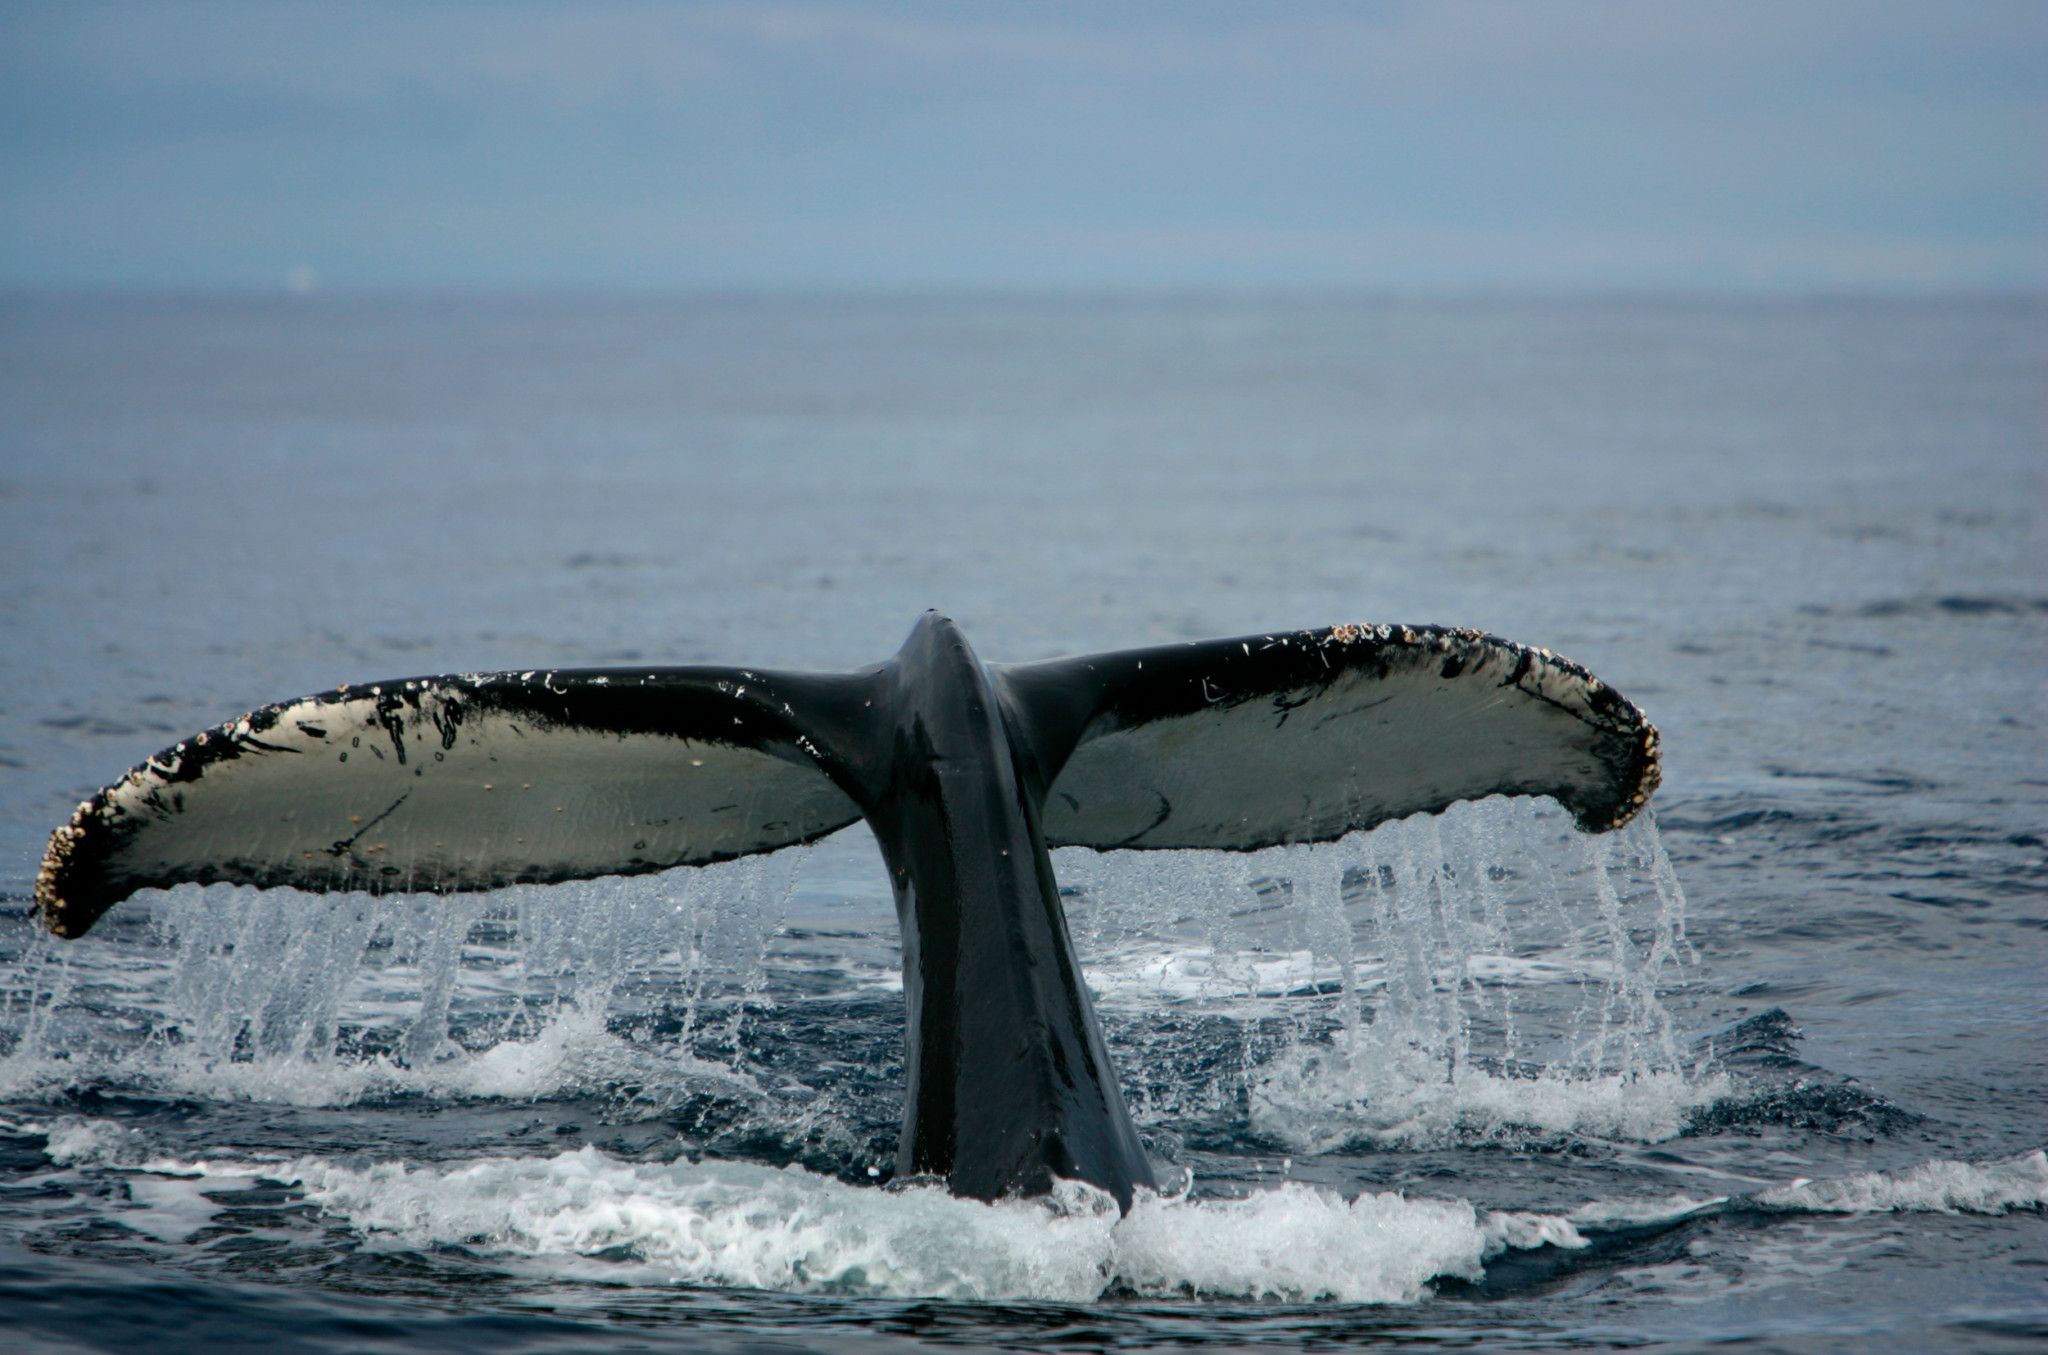 Humpback Whales in the Southern Ocean. © Greenpeace / Jiri Rezac